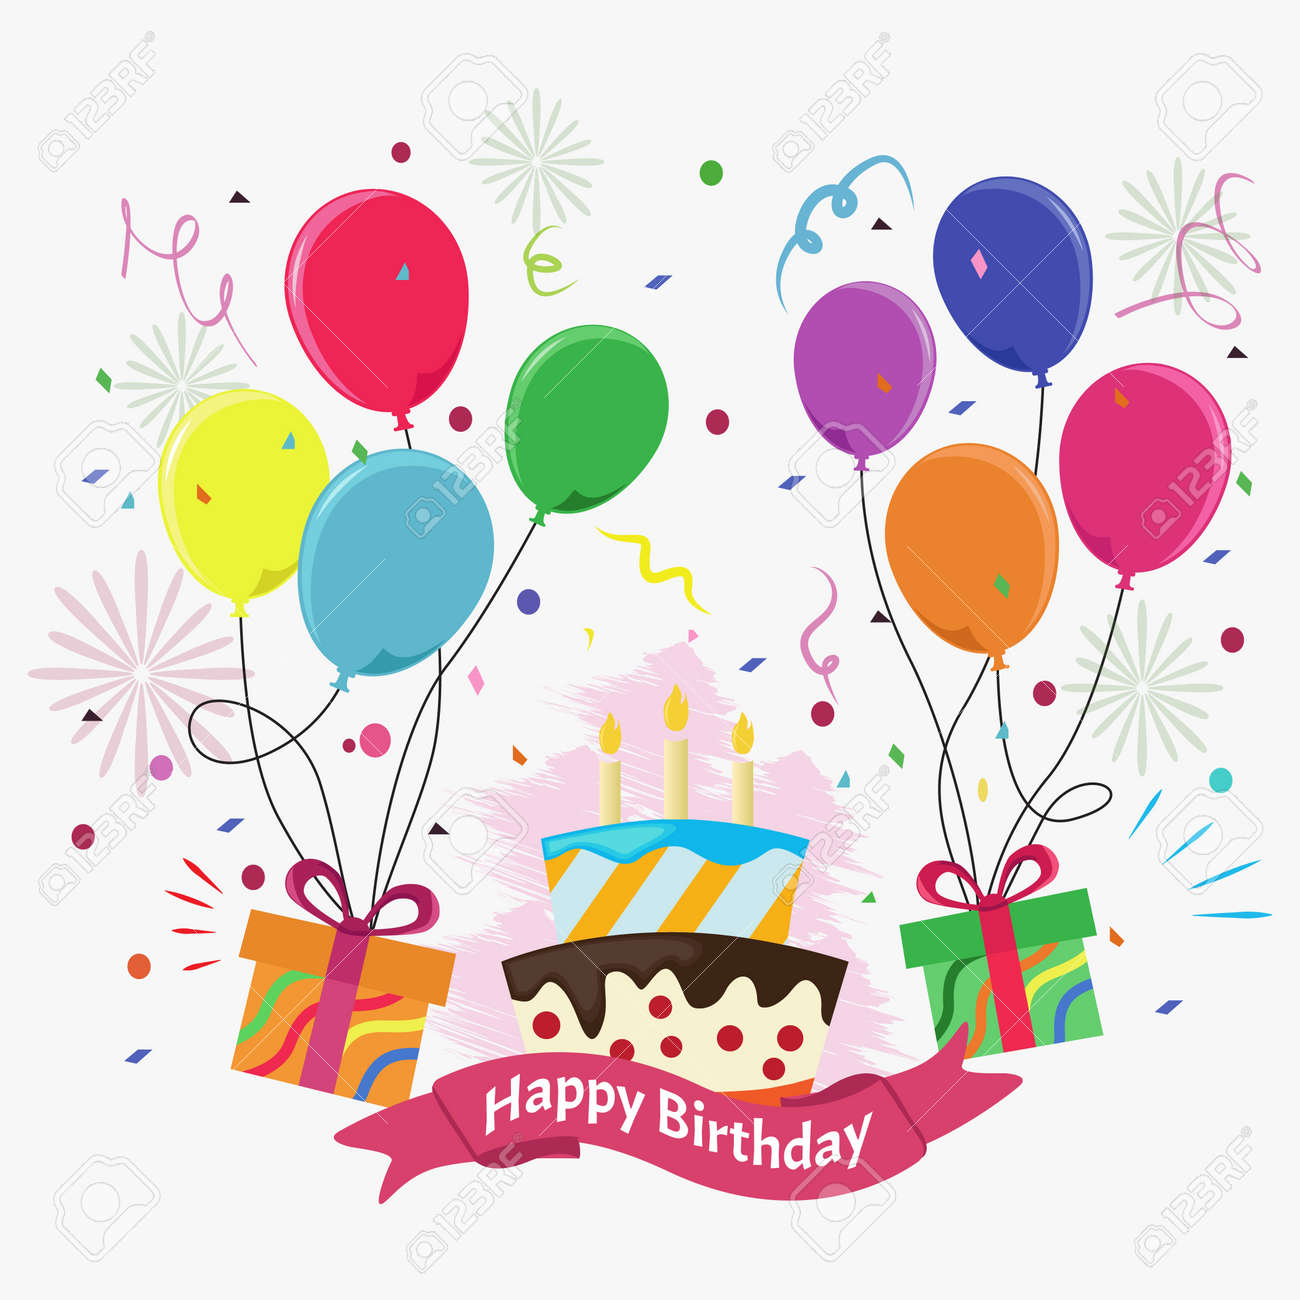 Cute Birthday Card With Cake Candles Gift Boxes And Balloons